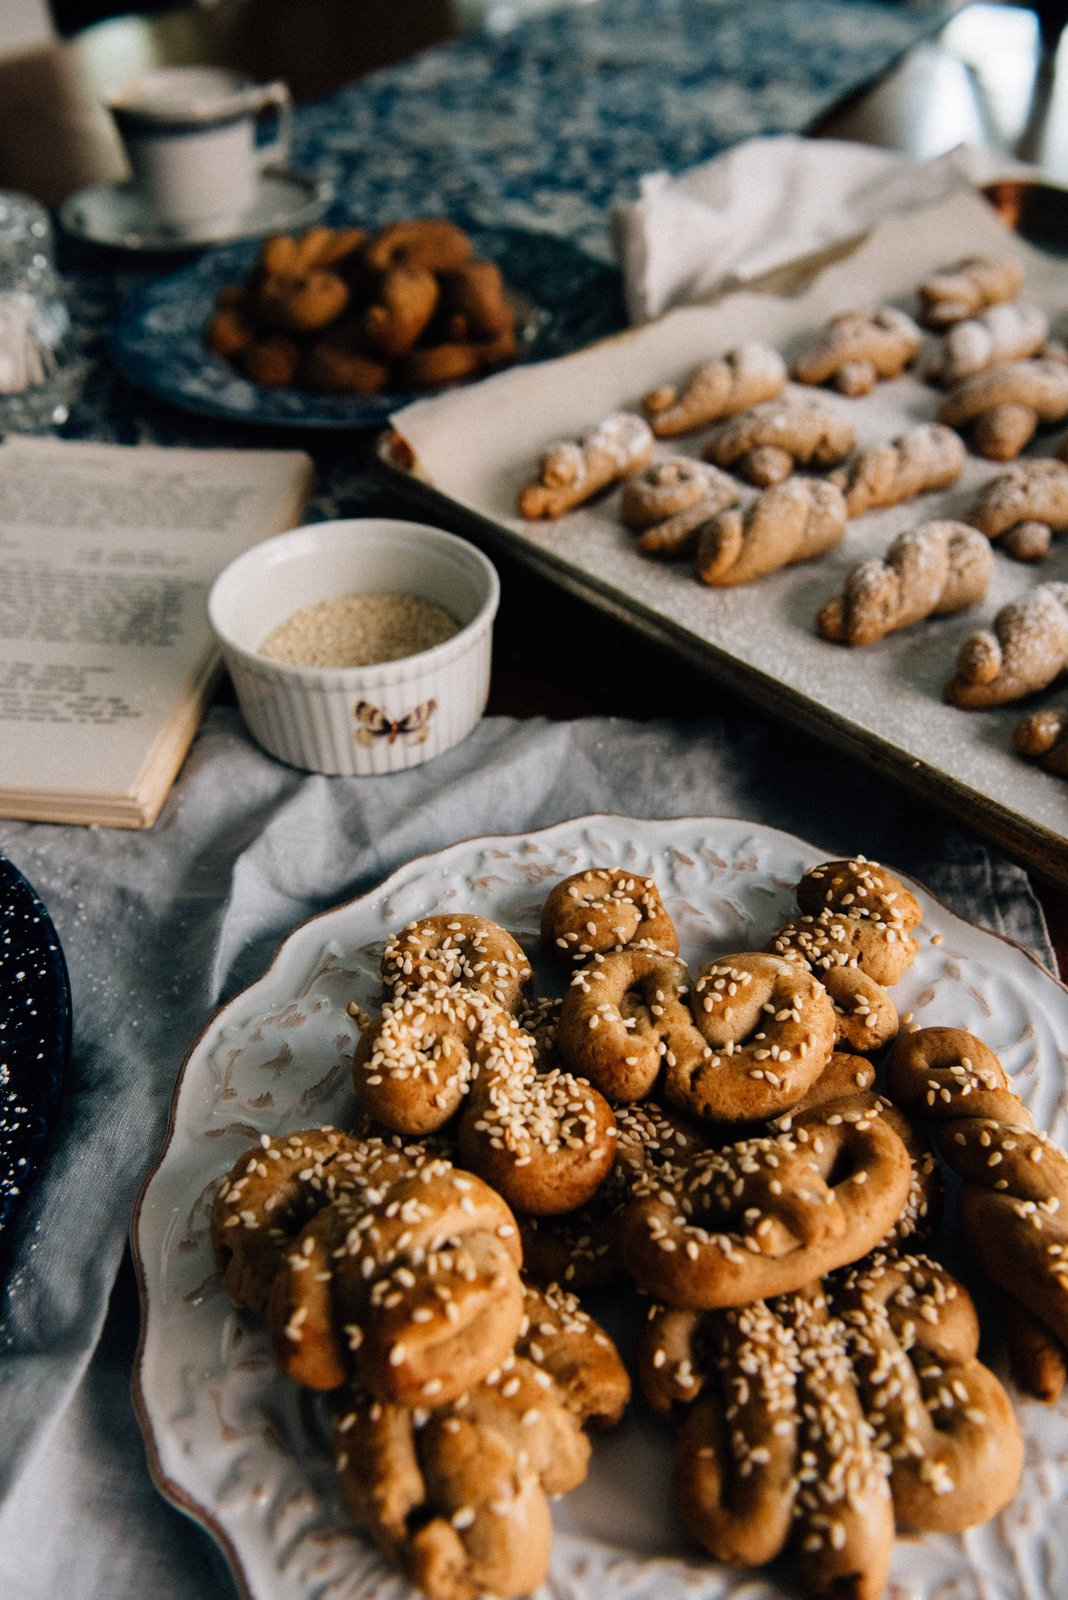 A classic favorite - Greek Sesame Cookies with some untraditional twists!